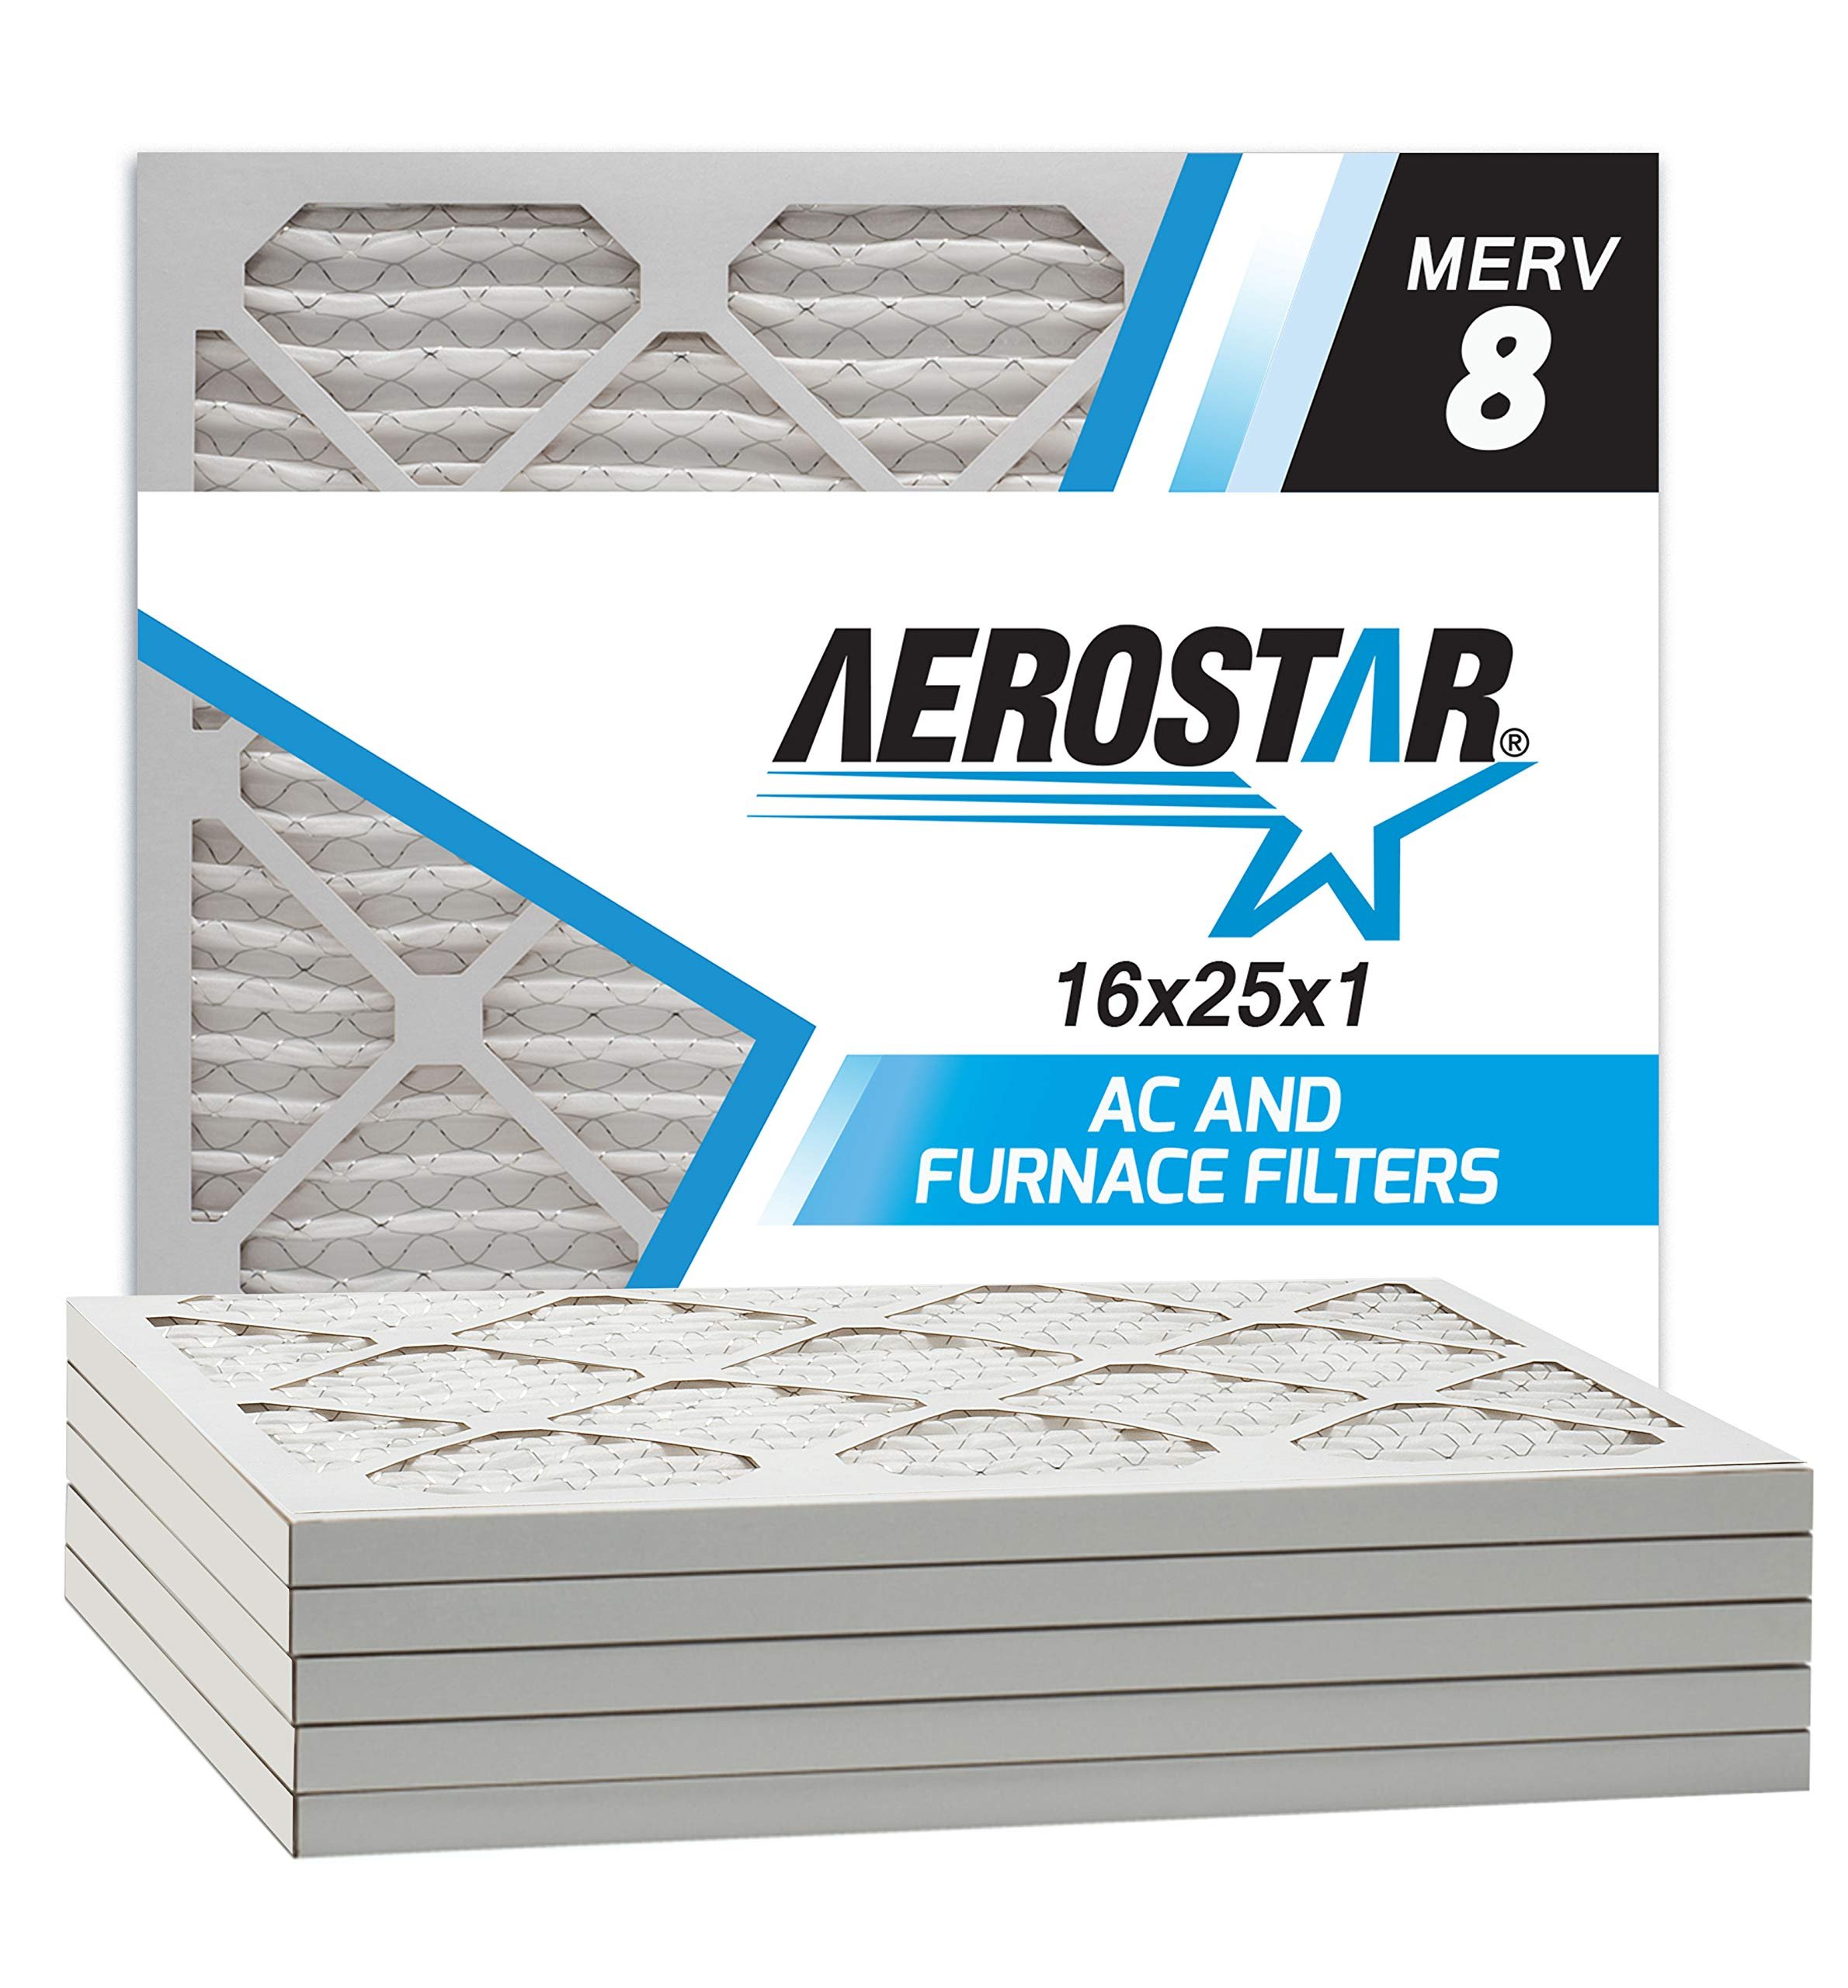 Aerostar 16x25x1 MERV 8 Pleated Air Filter, Made in the USA, 6-Pack by Aerostar